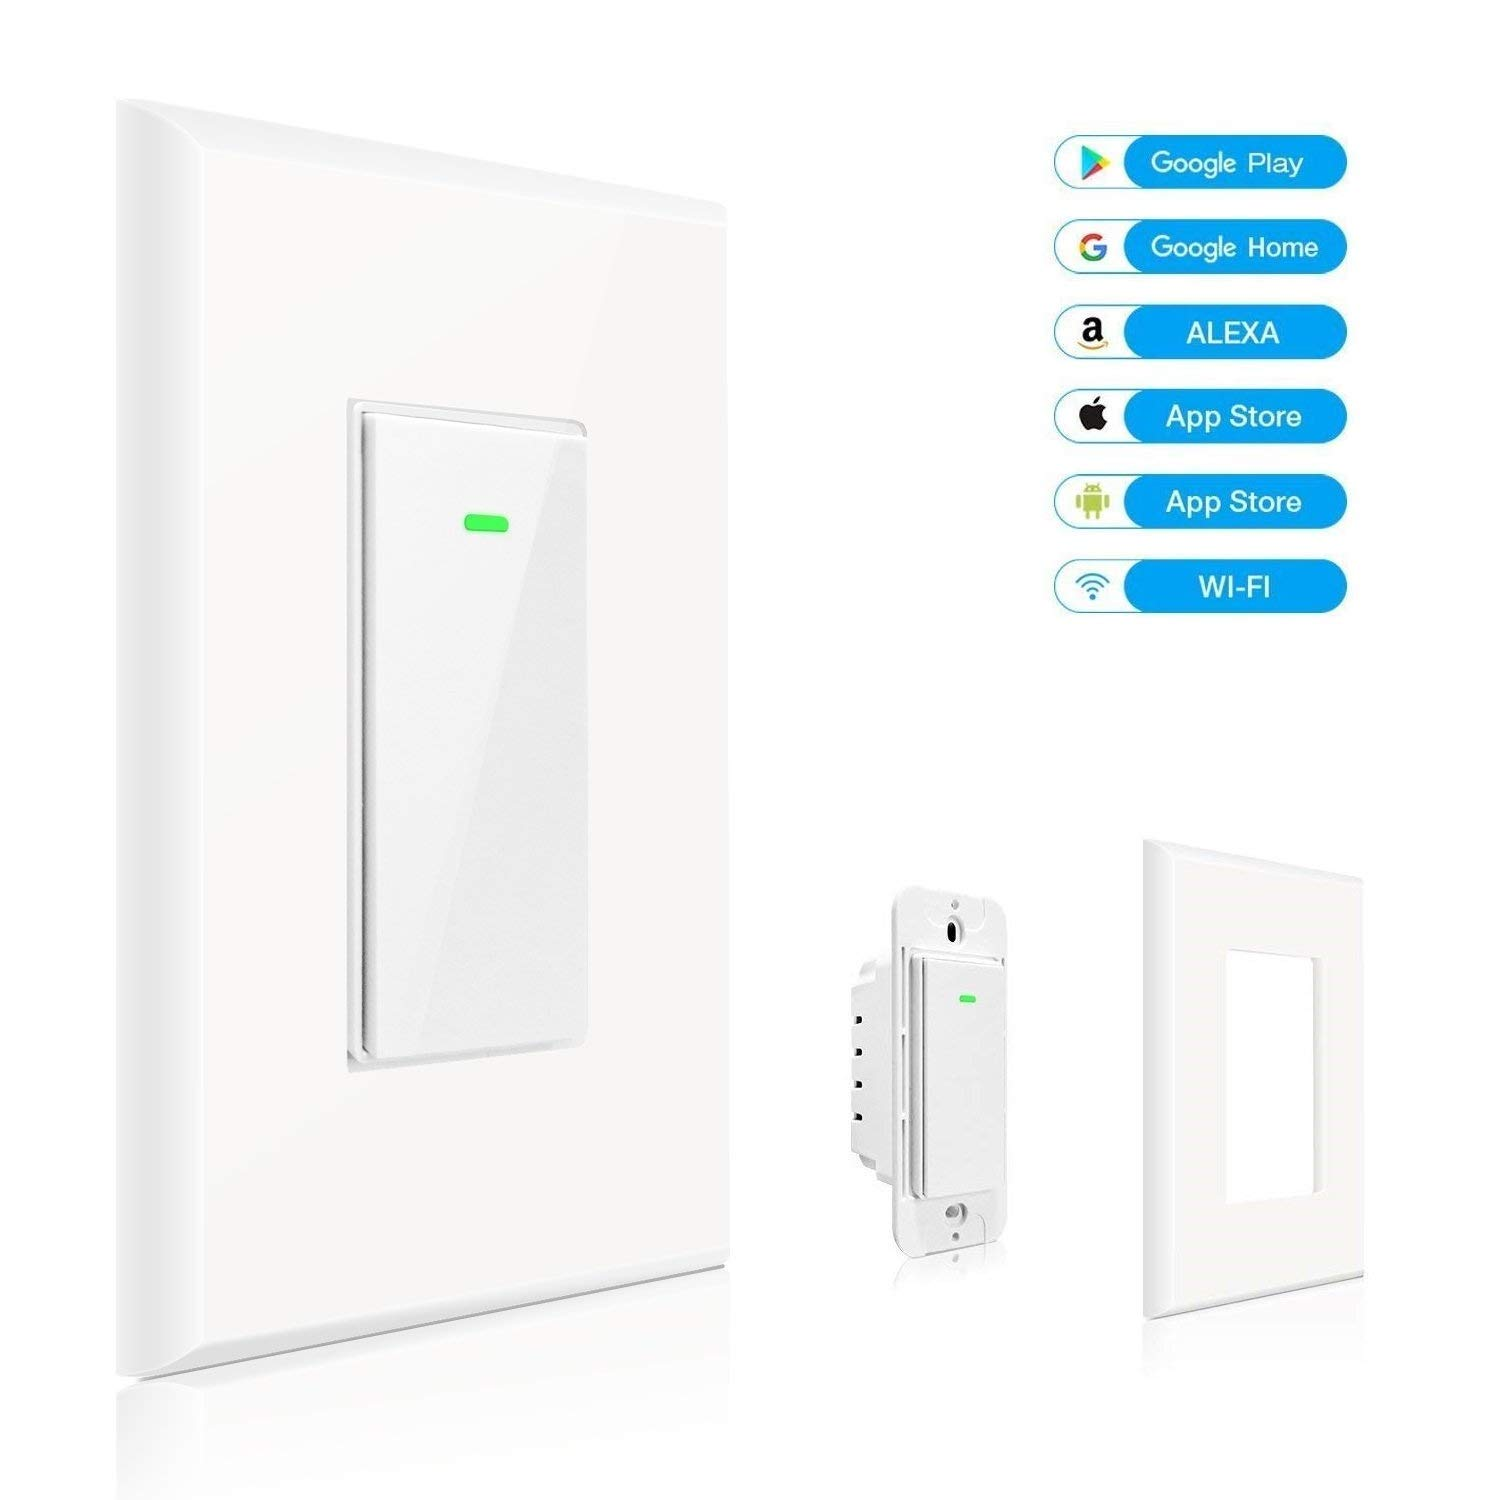 Smart Wi-Fi Light Switch No Hub Required Compatible with Amazon Alexa and Google Assistant Remote Control/Schedule Your Fixtures Anywhere No Hub Required Overload Protection 15A Neutral Wire Required